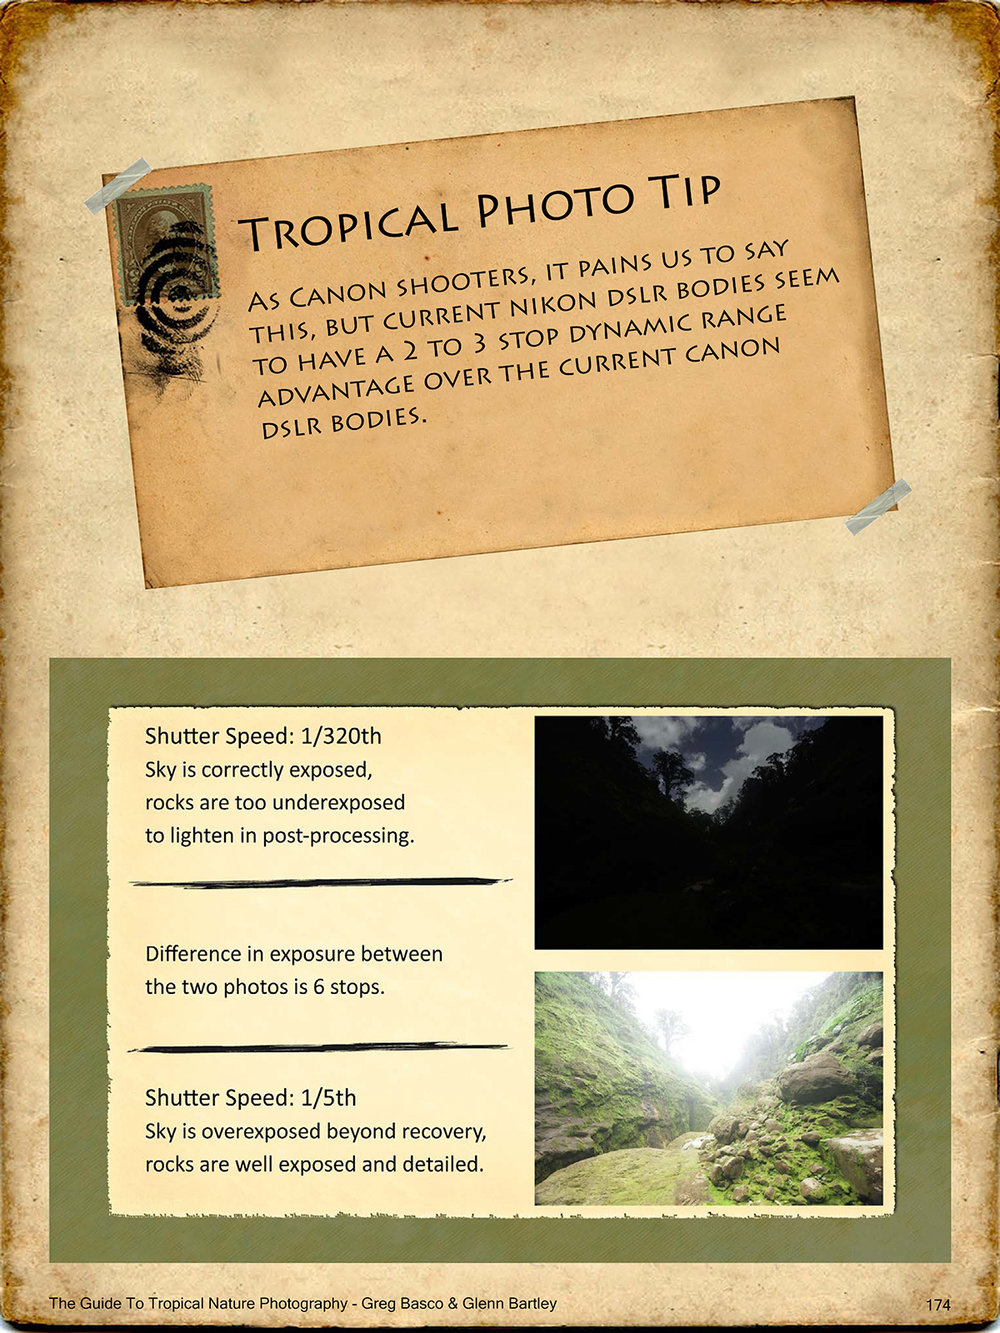 THE-GUIDE-TO-TROPICAL-NATURE-PHOTOGRAPHY-sample6.jpg